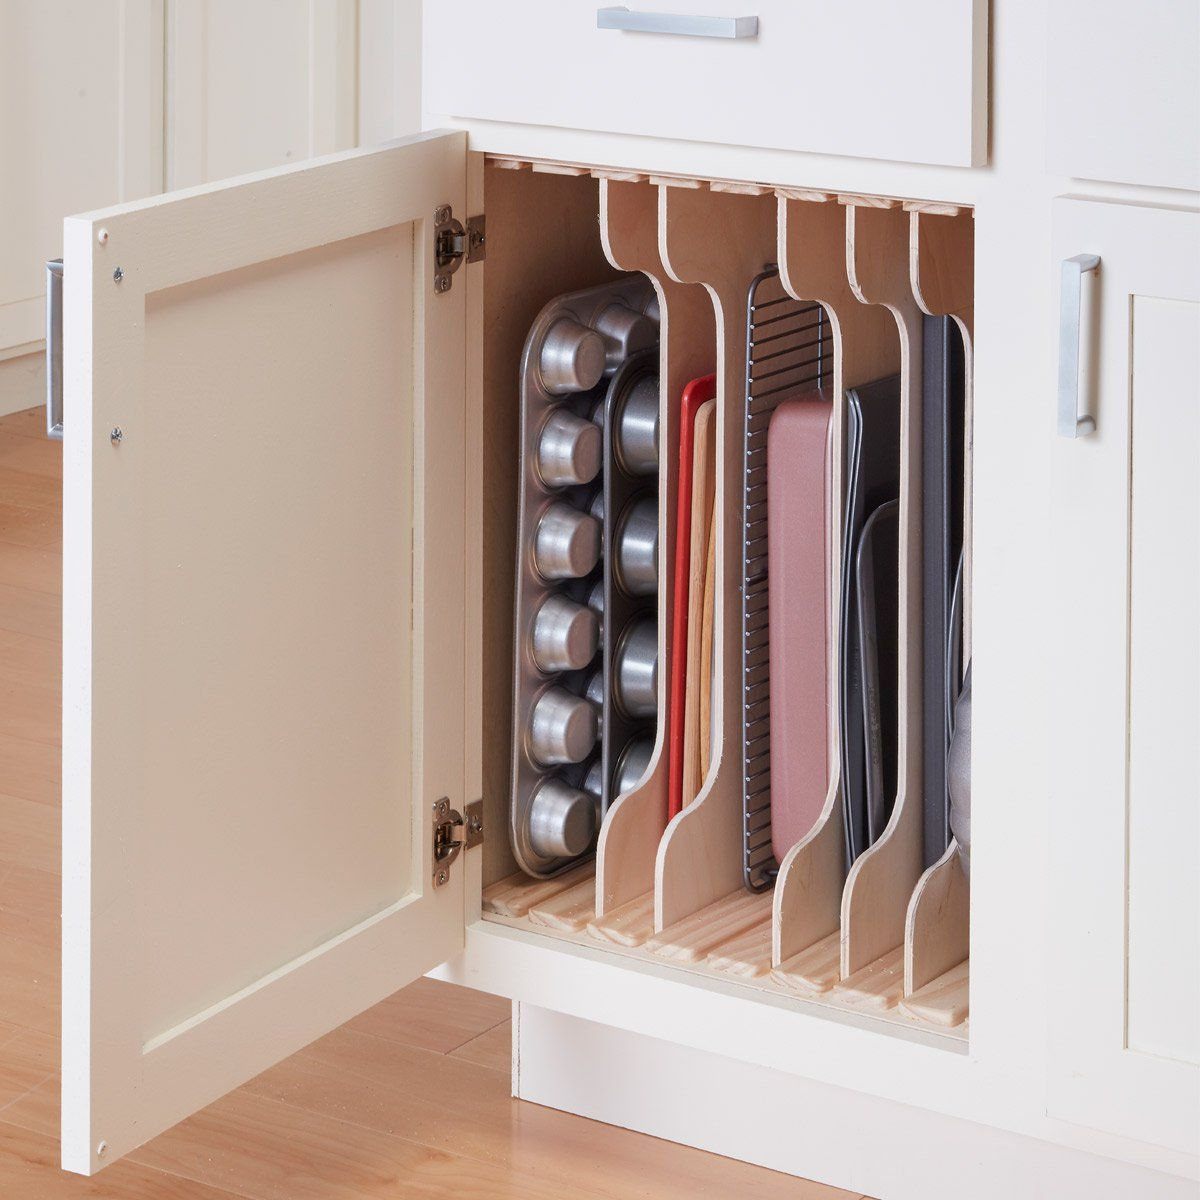 Kitchen Cabinet Organizers: DIY Dividers #kitchen